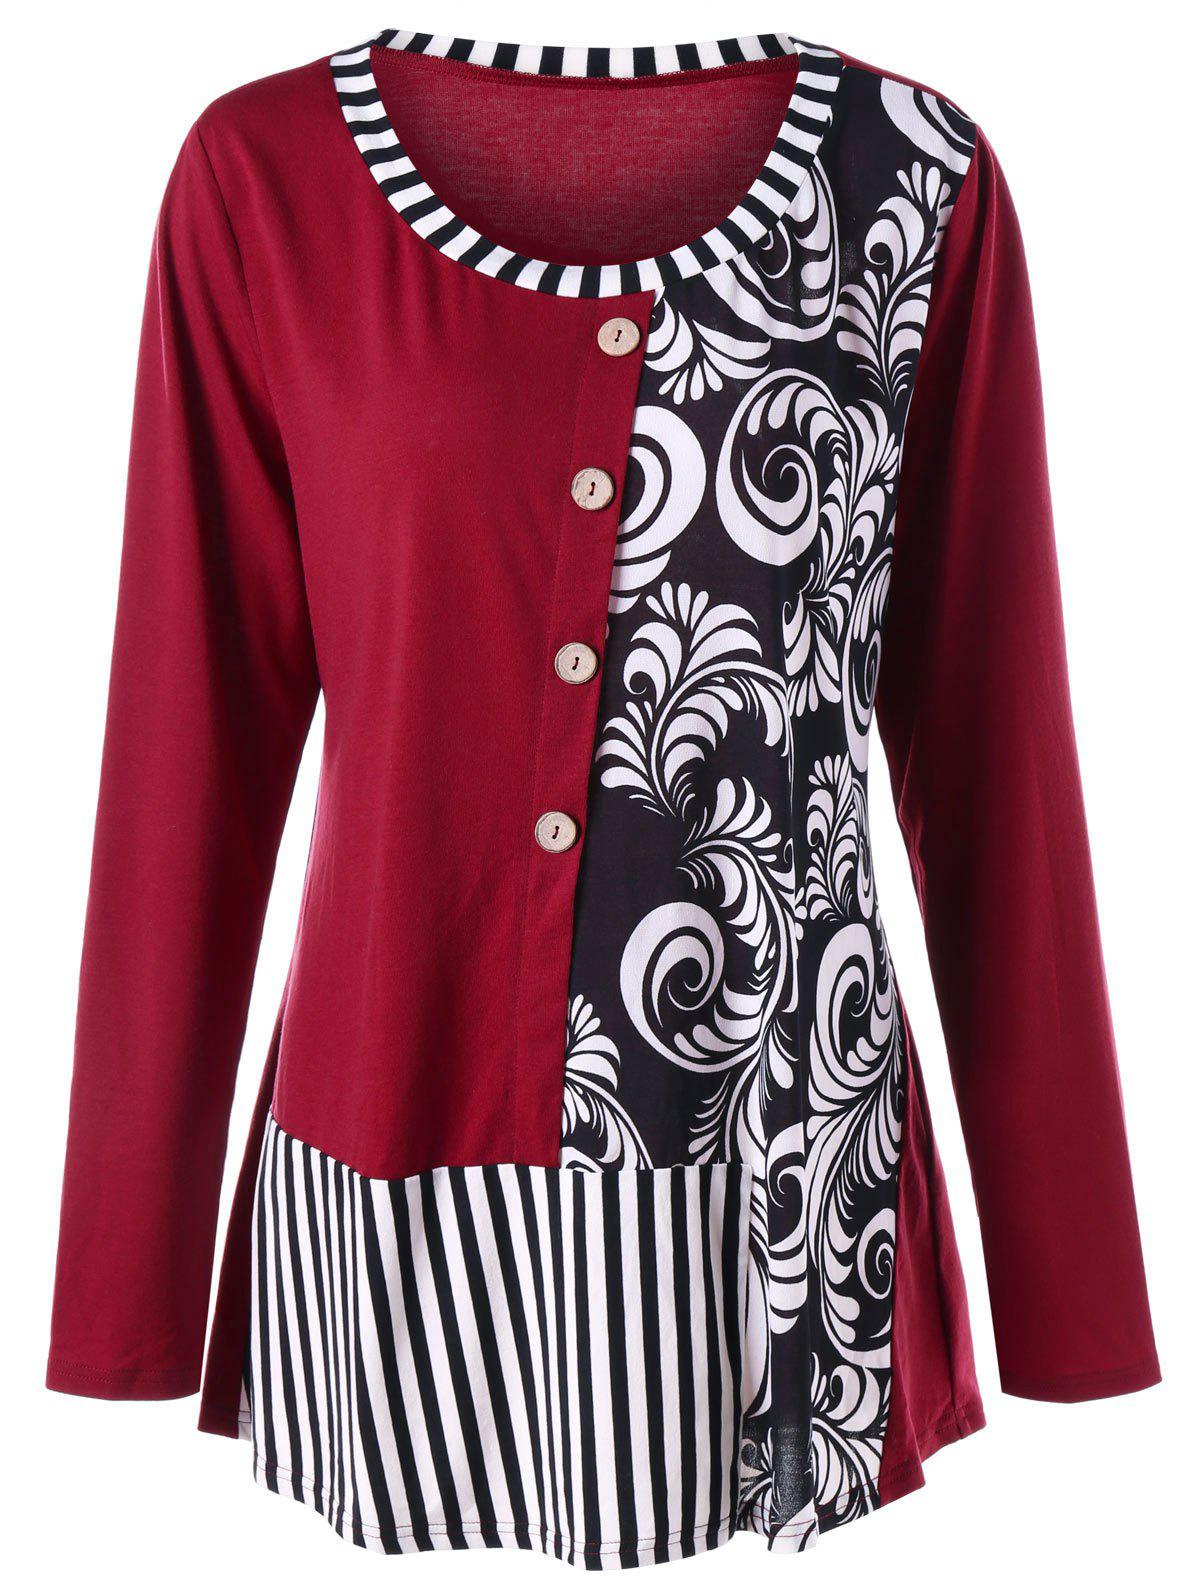 Plus Size Bandana Floral Striped T-shirtWOMEN<br><br>Size: XL; Color: WINE RED; Material: Polyester,Spandex; Shirt Length: Long; Sleeve Length: Full; Collar: Round Neck; Style: Casual; Season: Fall,Spring; Embellishment: Button; Pattern Type: Striped; Weight: 0.3000kg; Package Contents: 1 x Top;